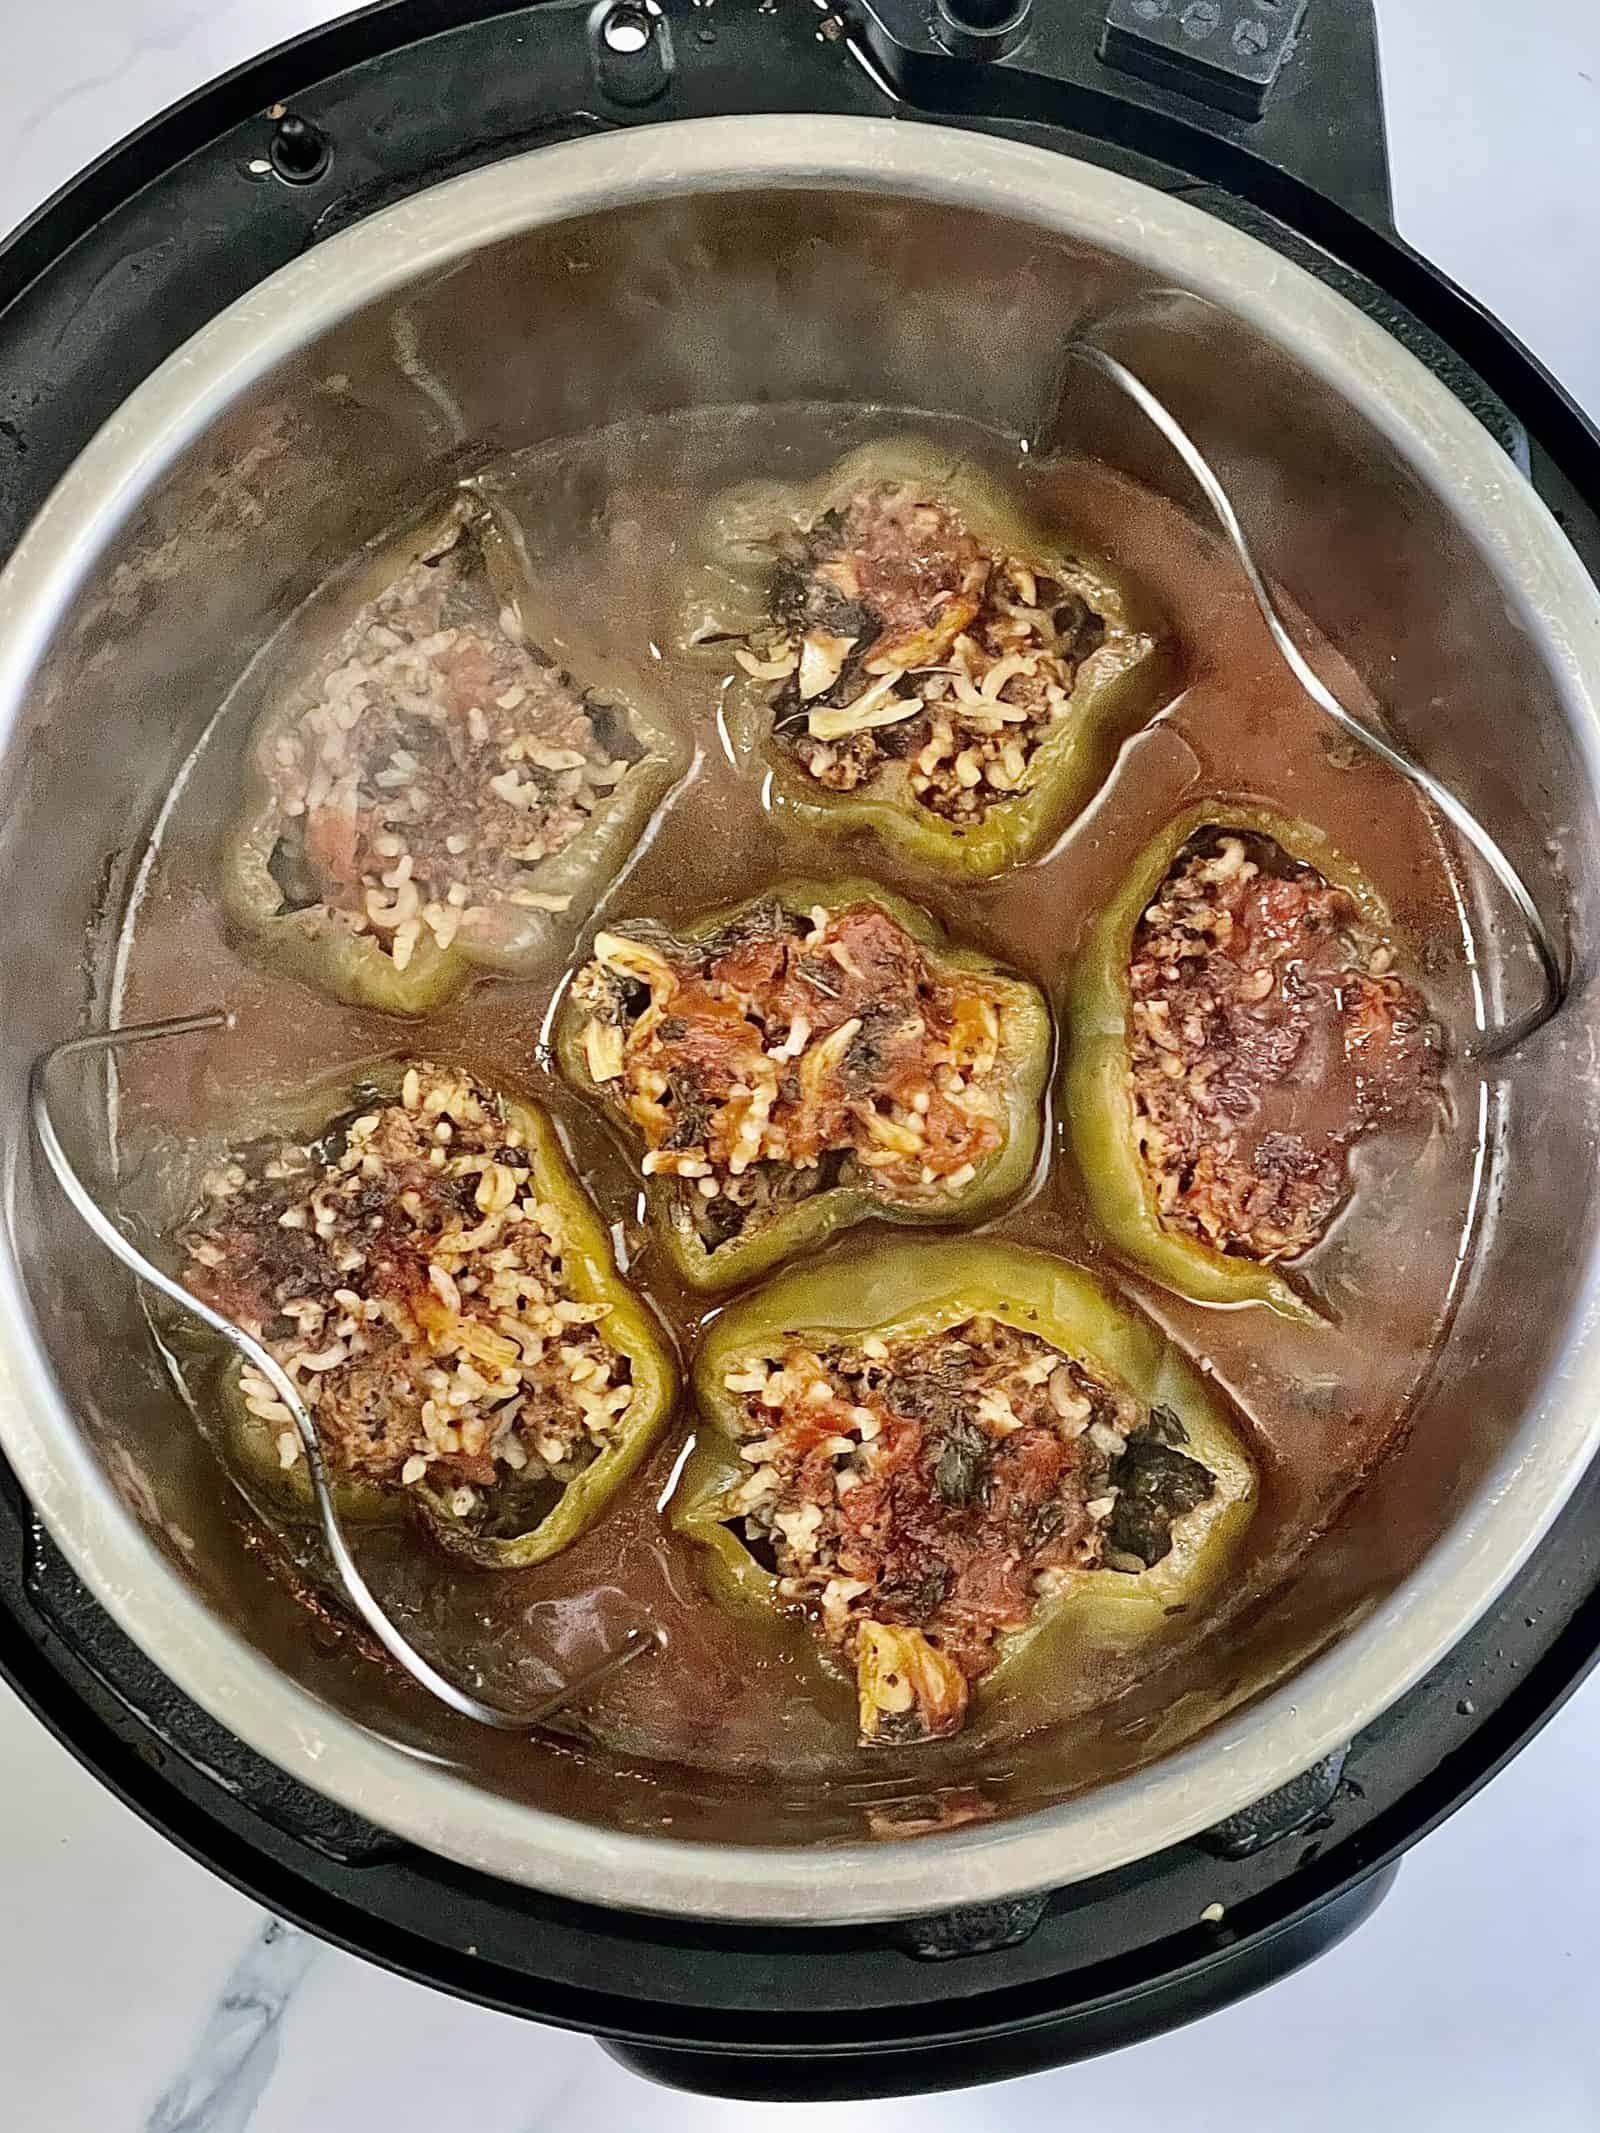 stuffed belle peppers after being cooked inside the instant pot